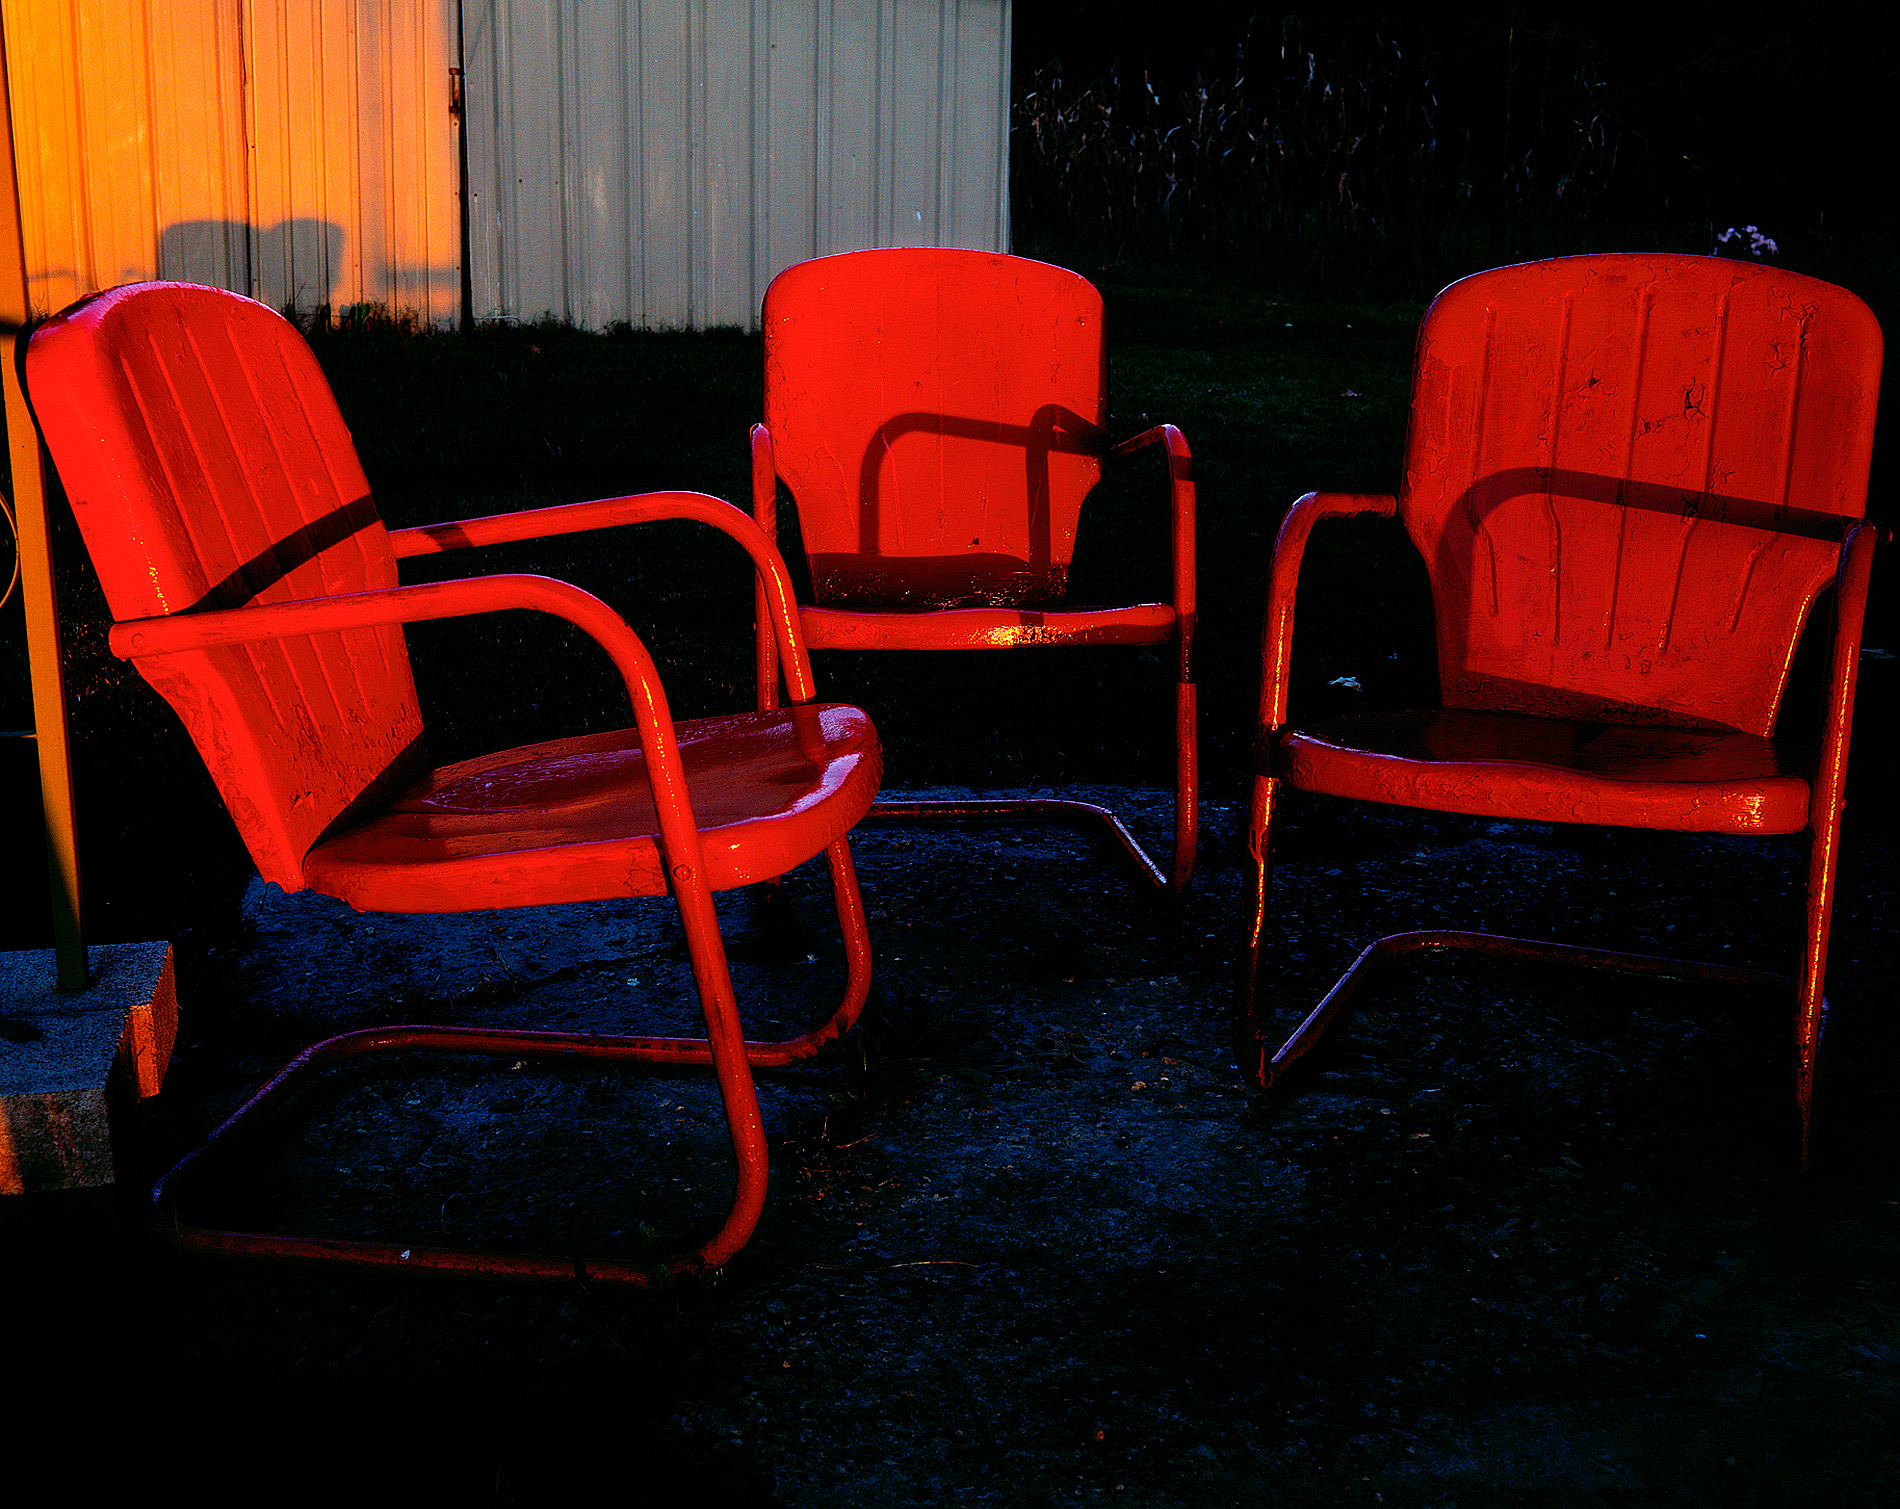 Willie's Chairs